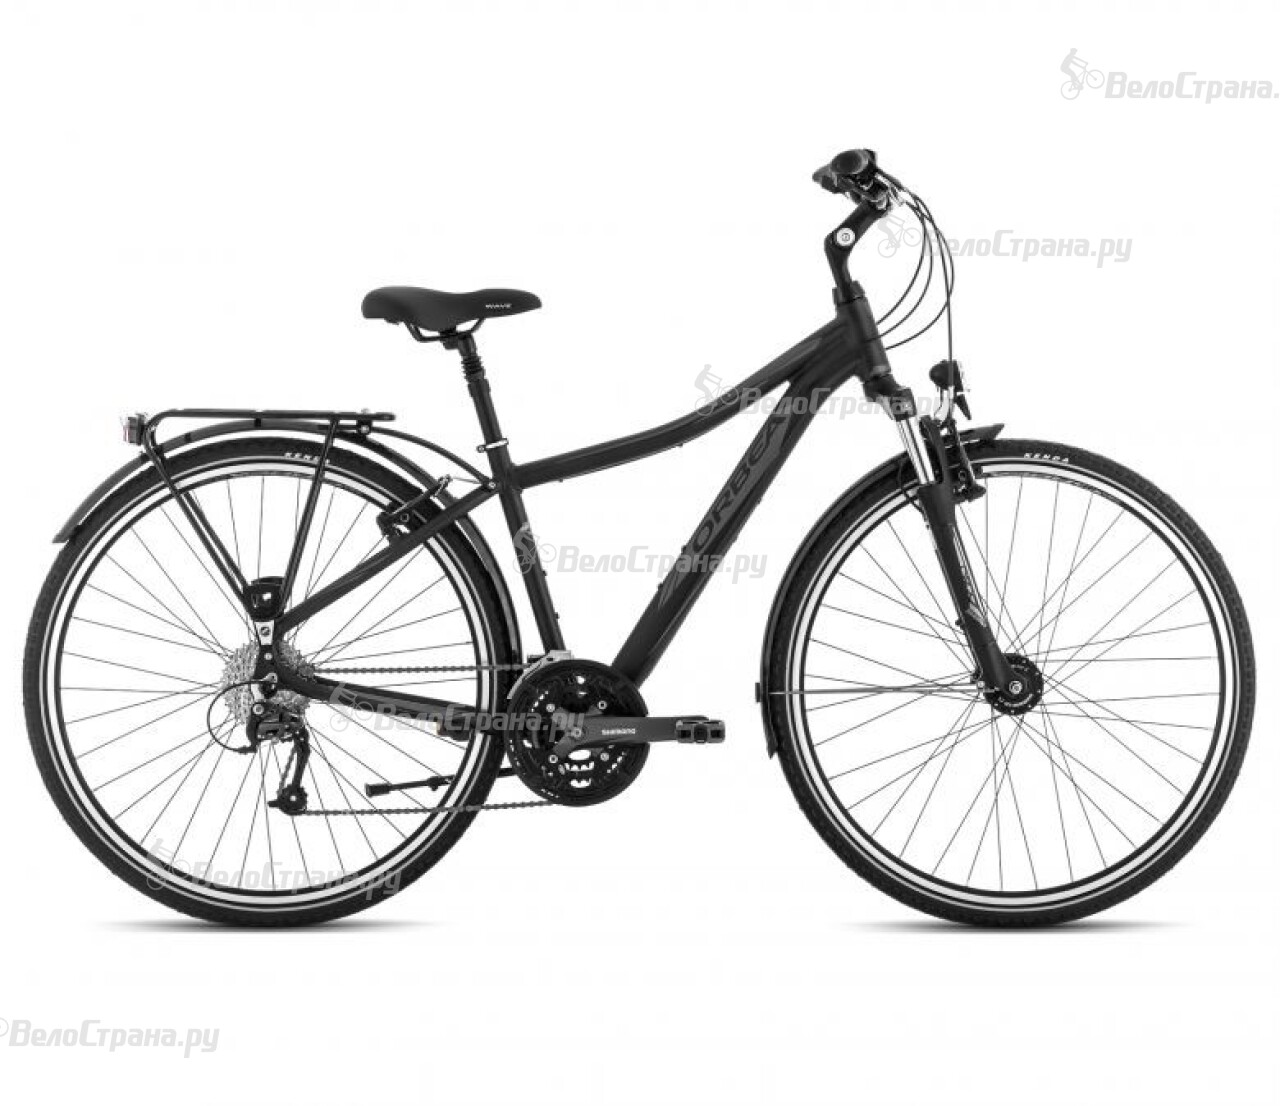 Велосипед Orbea Comfort 28 10 Entrance Eq (2014) diktat свитер